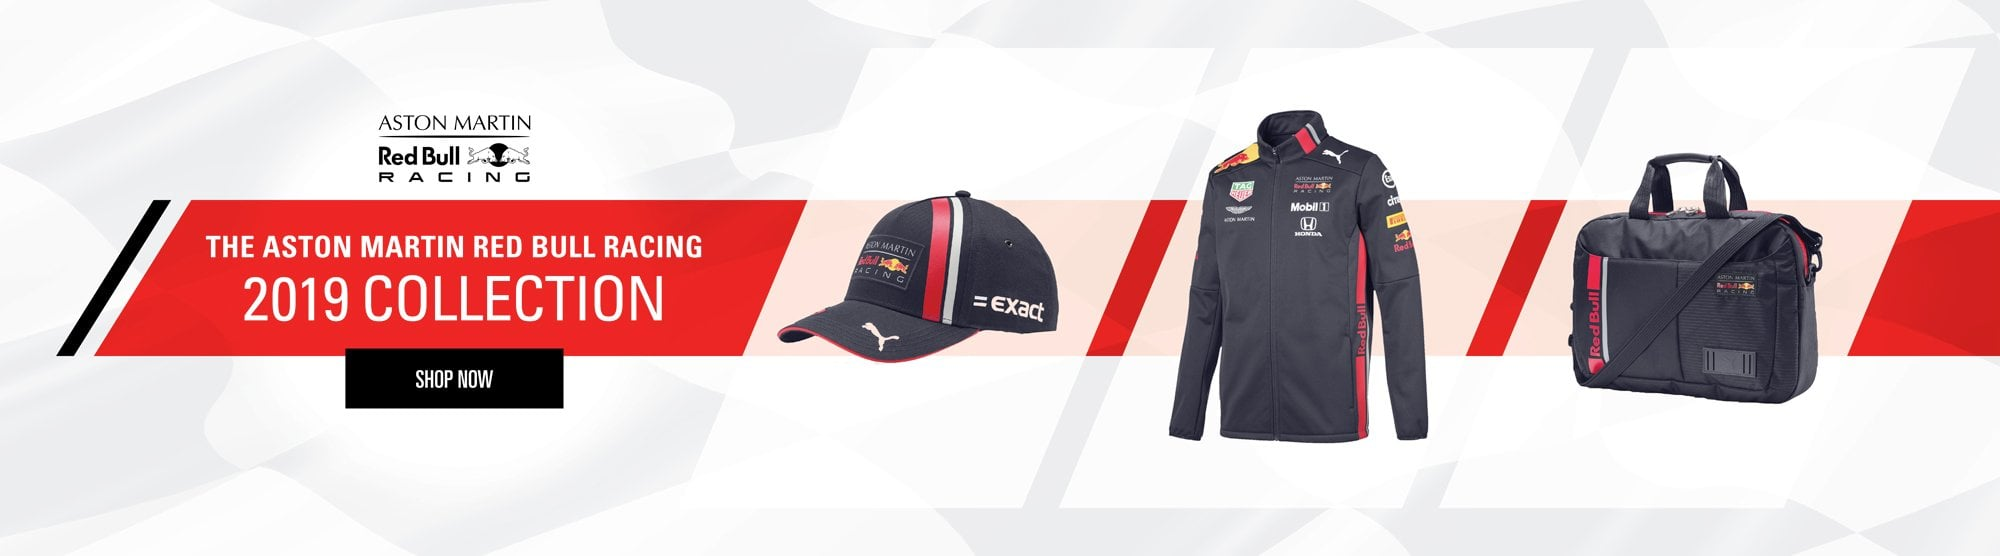 195mph Limited Motorsport Clothing